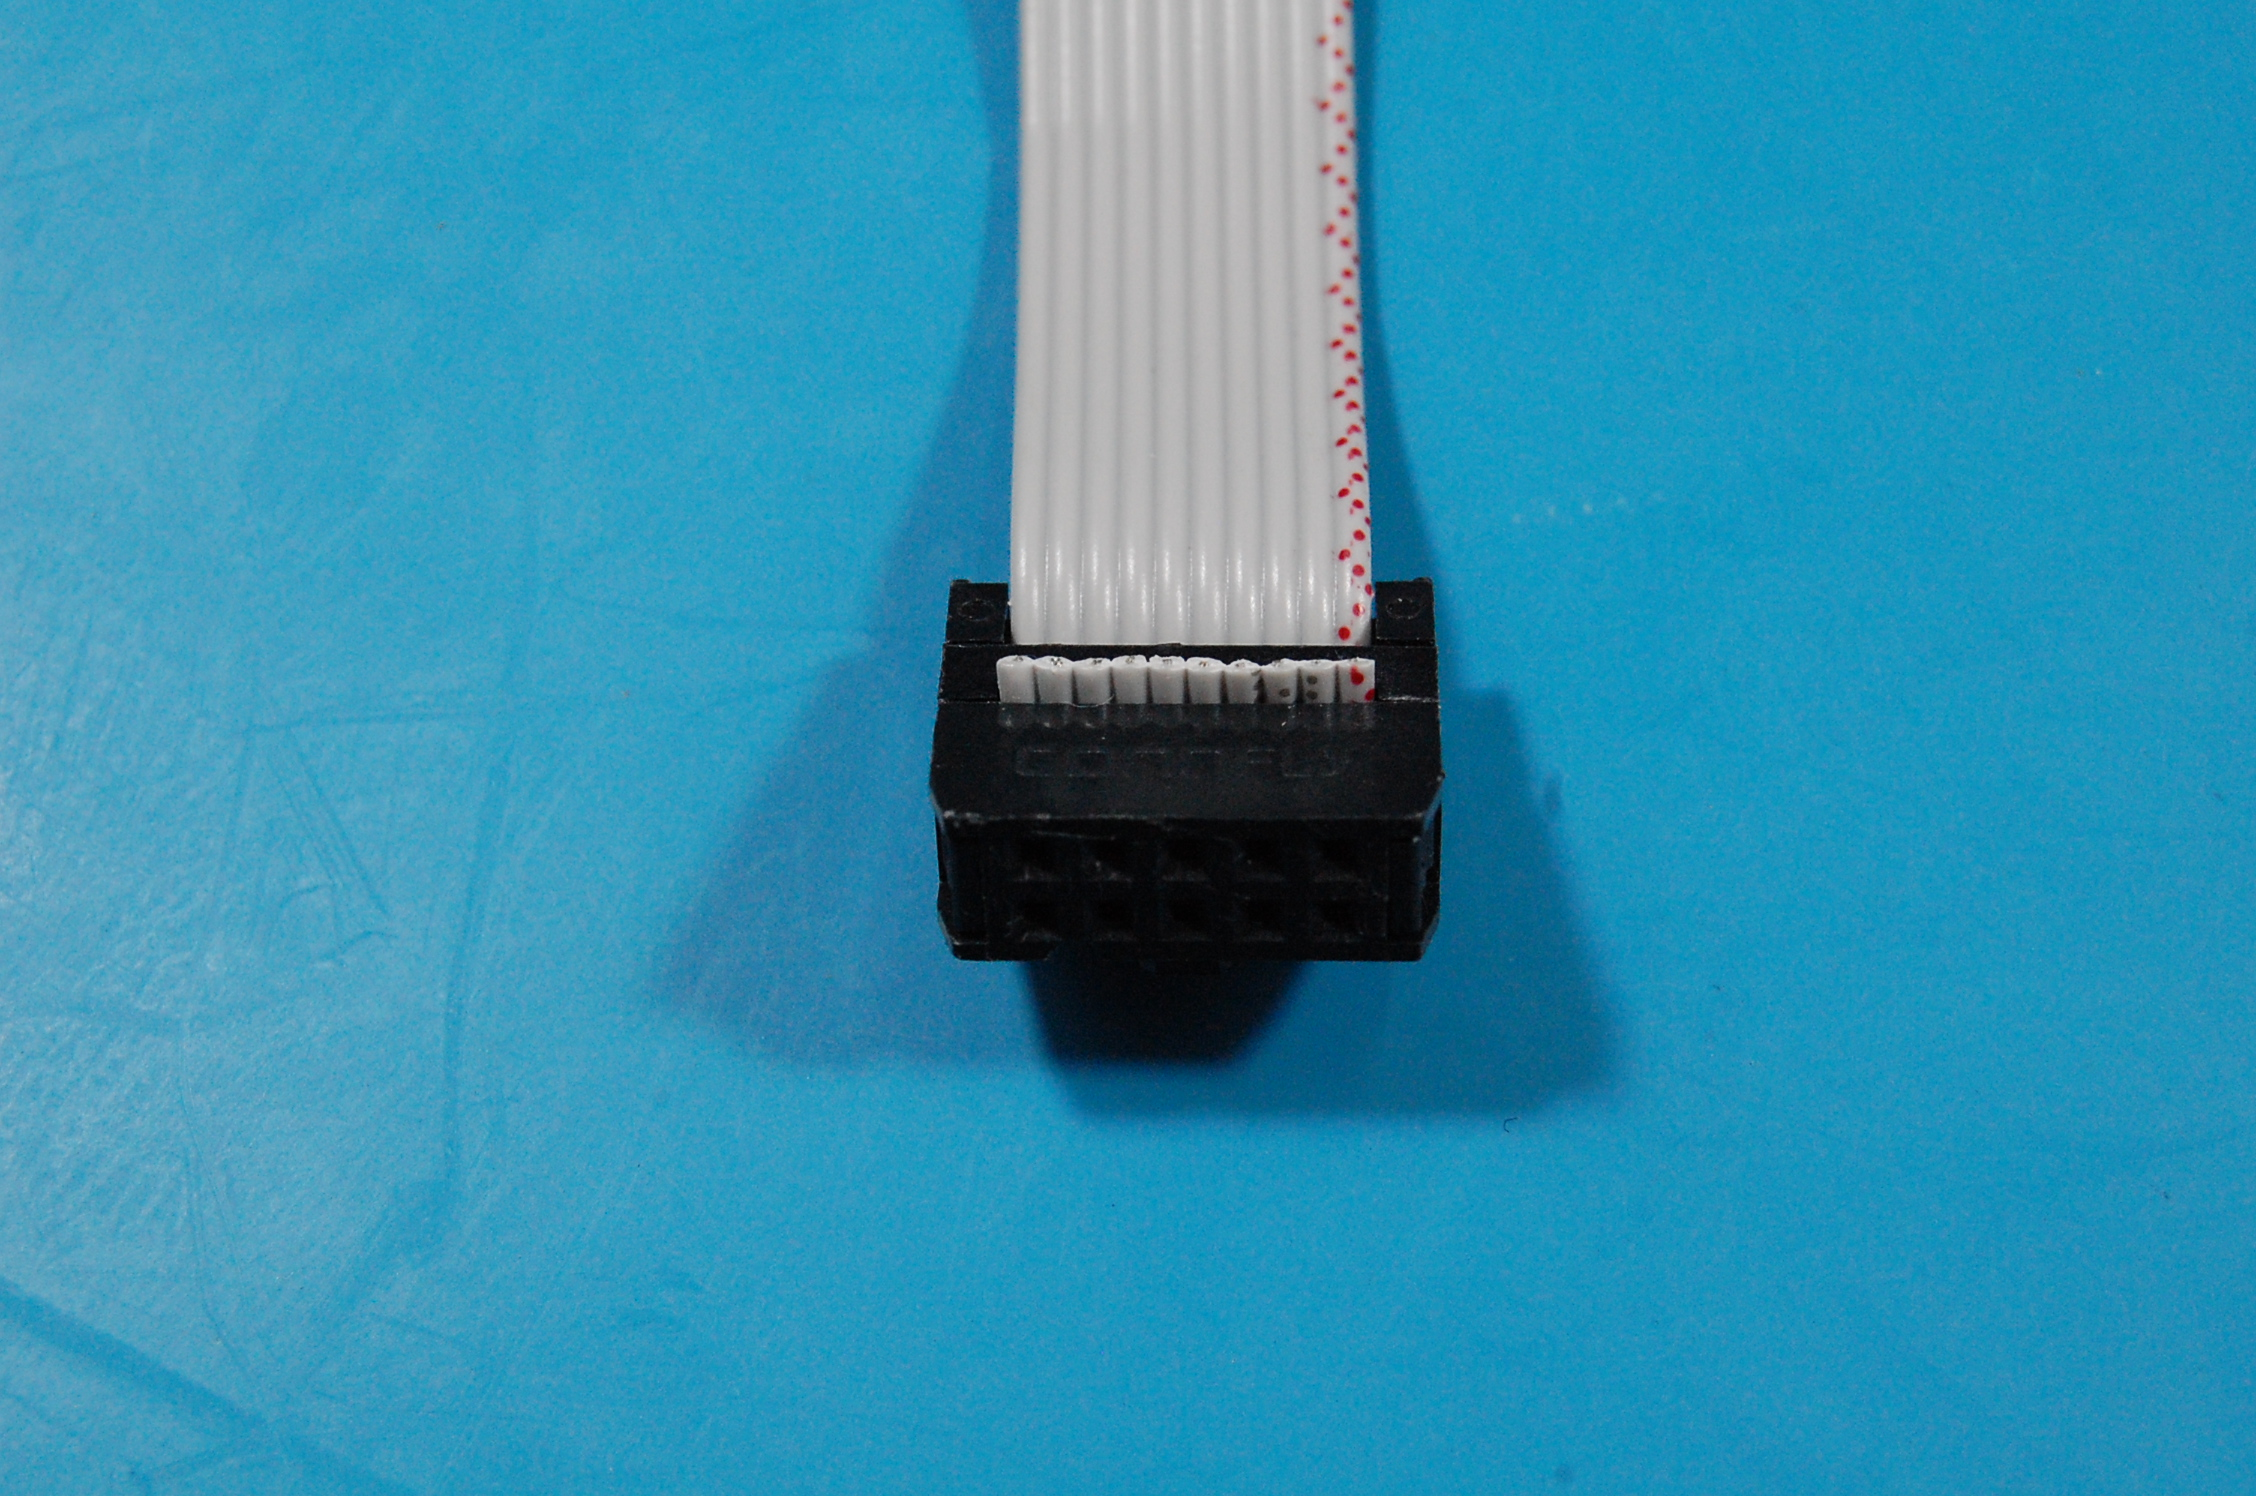 Crimped IDC connector - bottom view